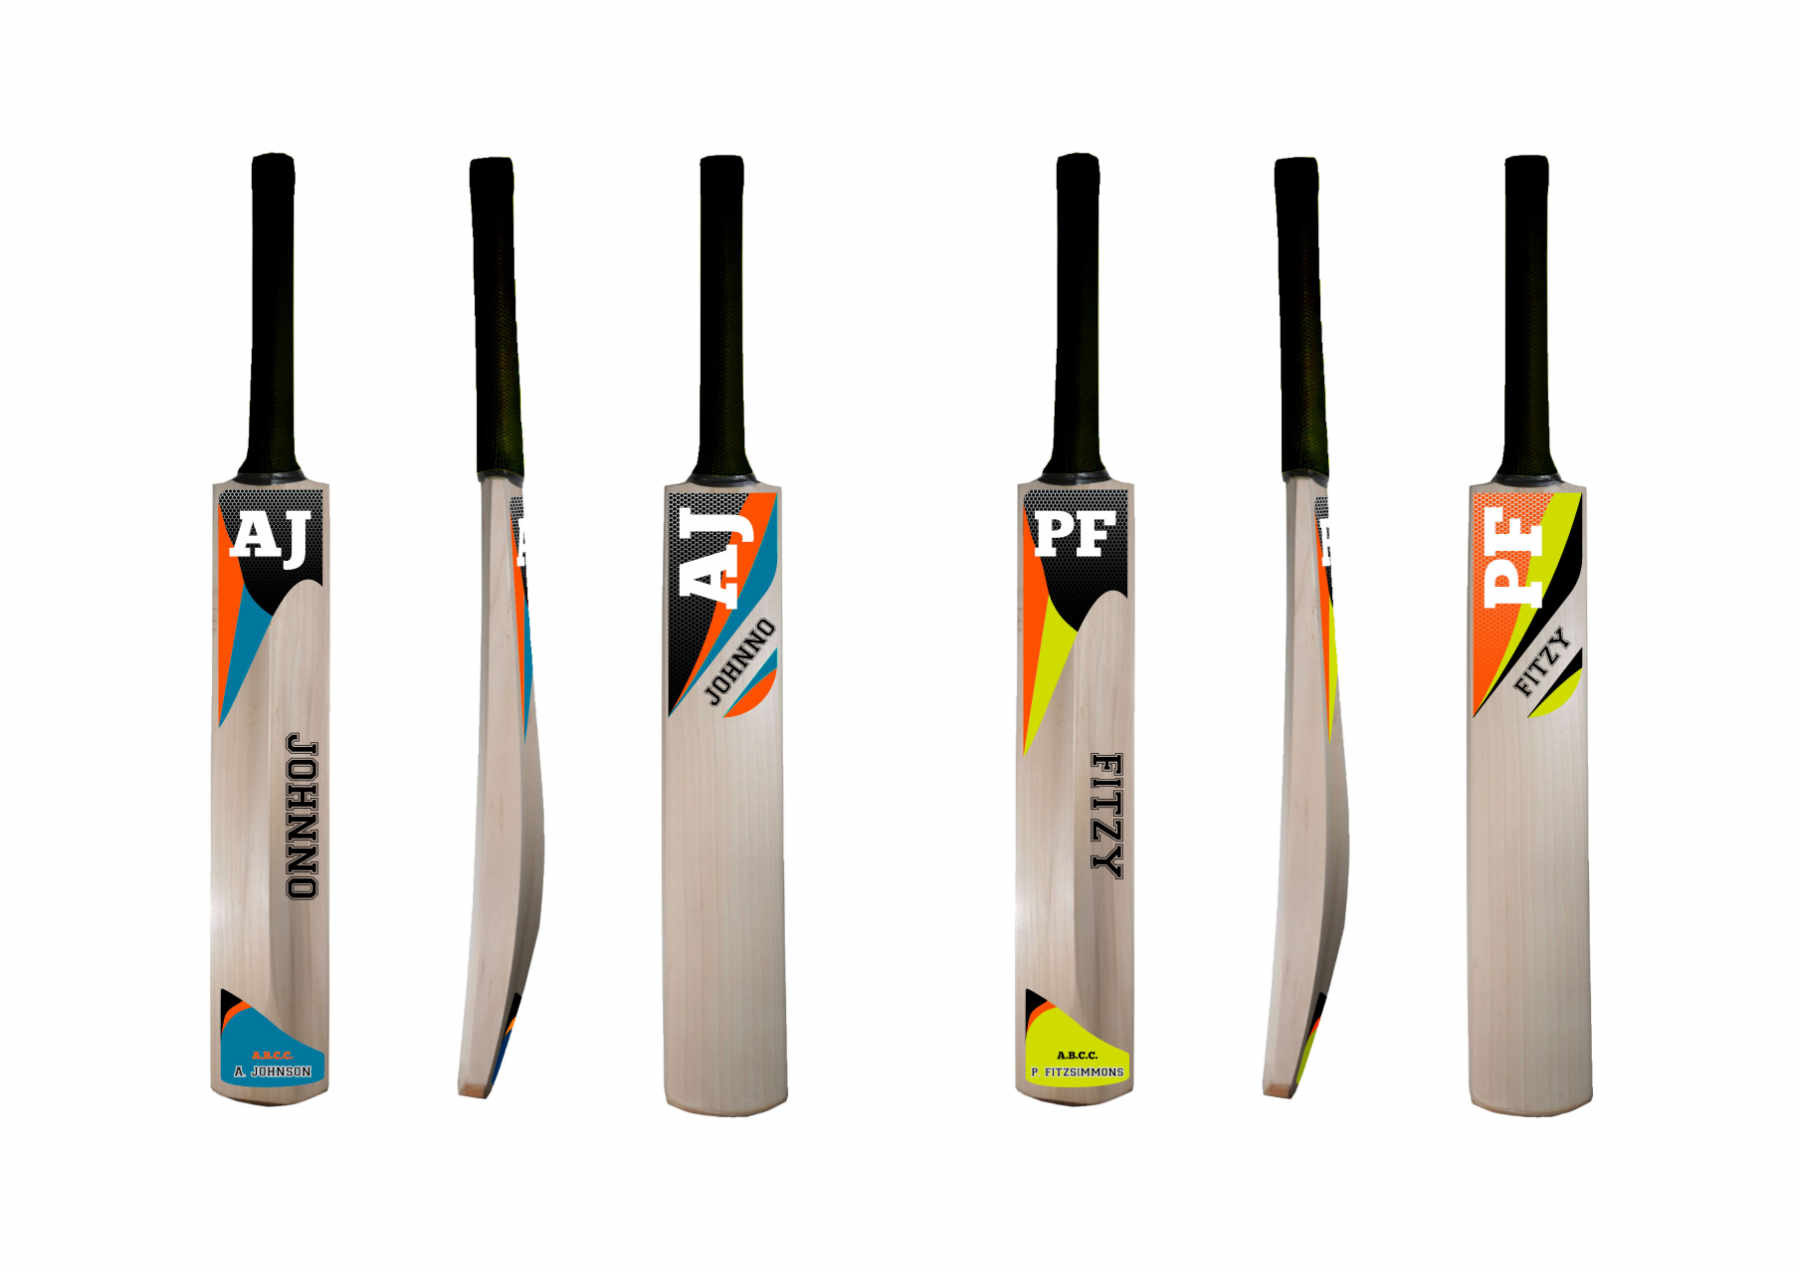 Personalised cricket bat stickers mesh design